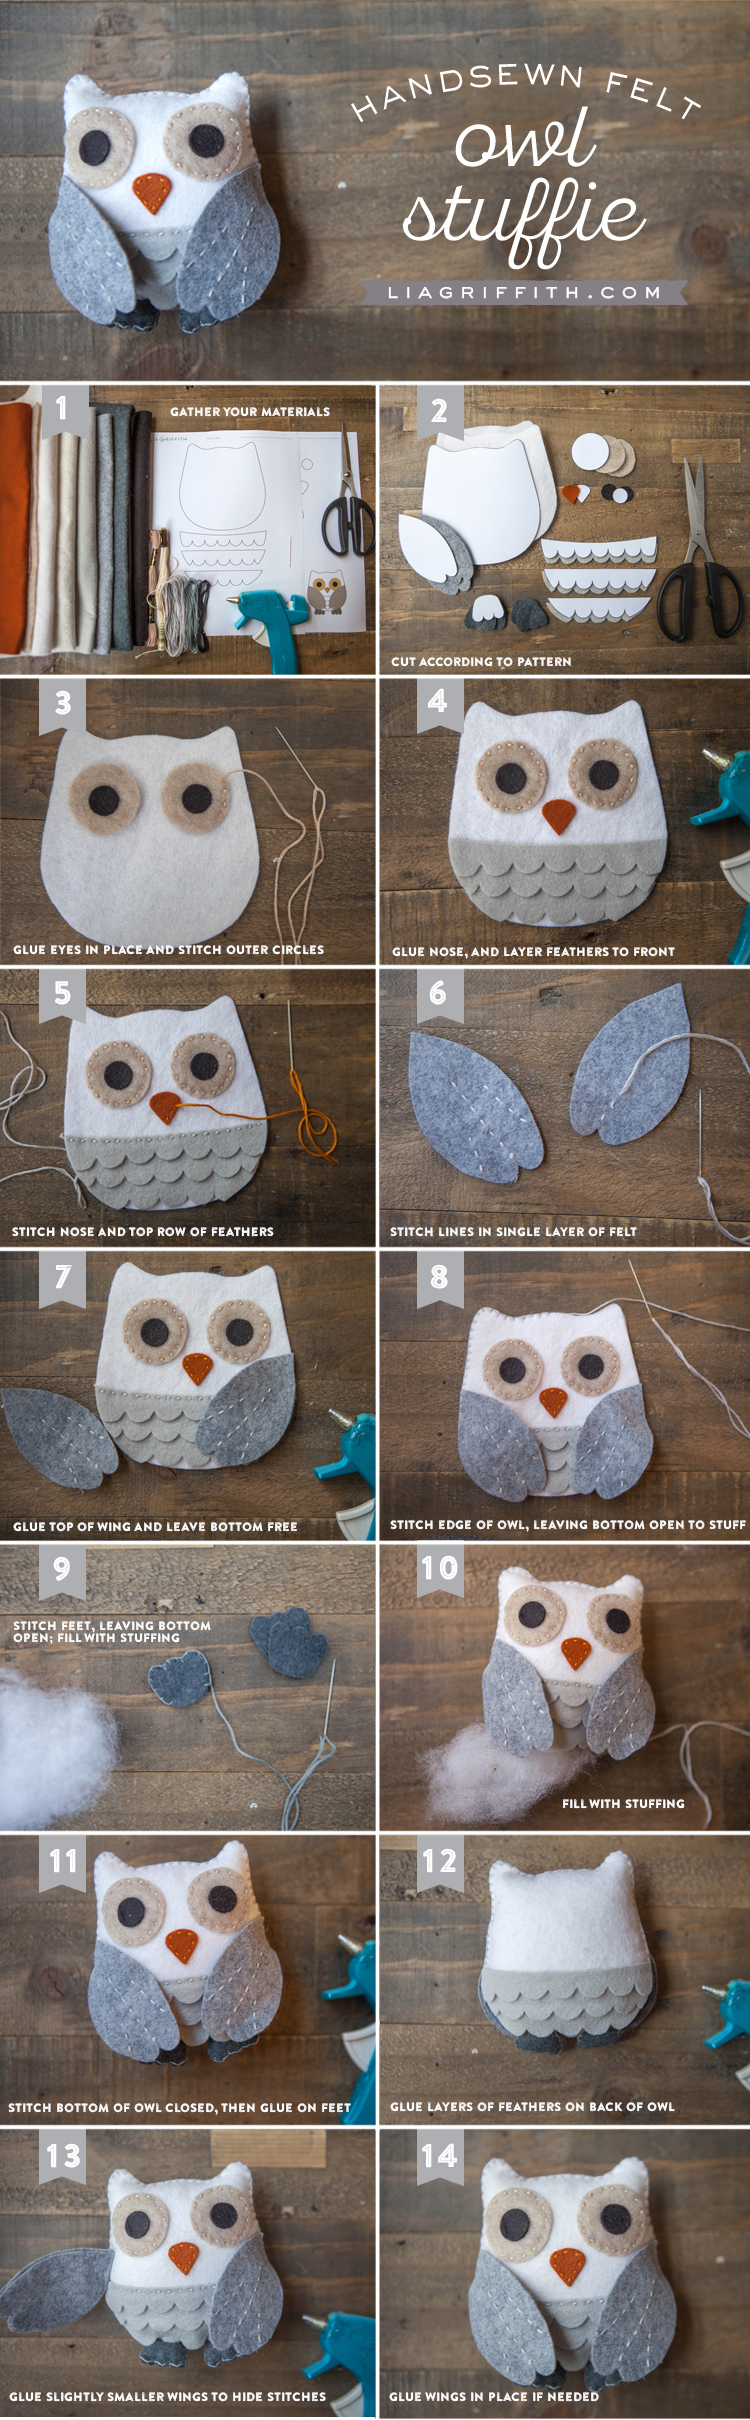 Photo tutorial for handsewn felt owl stuffie